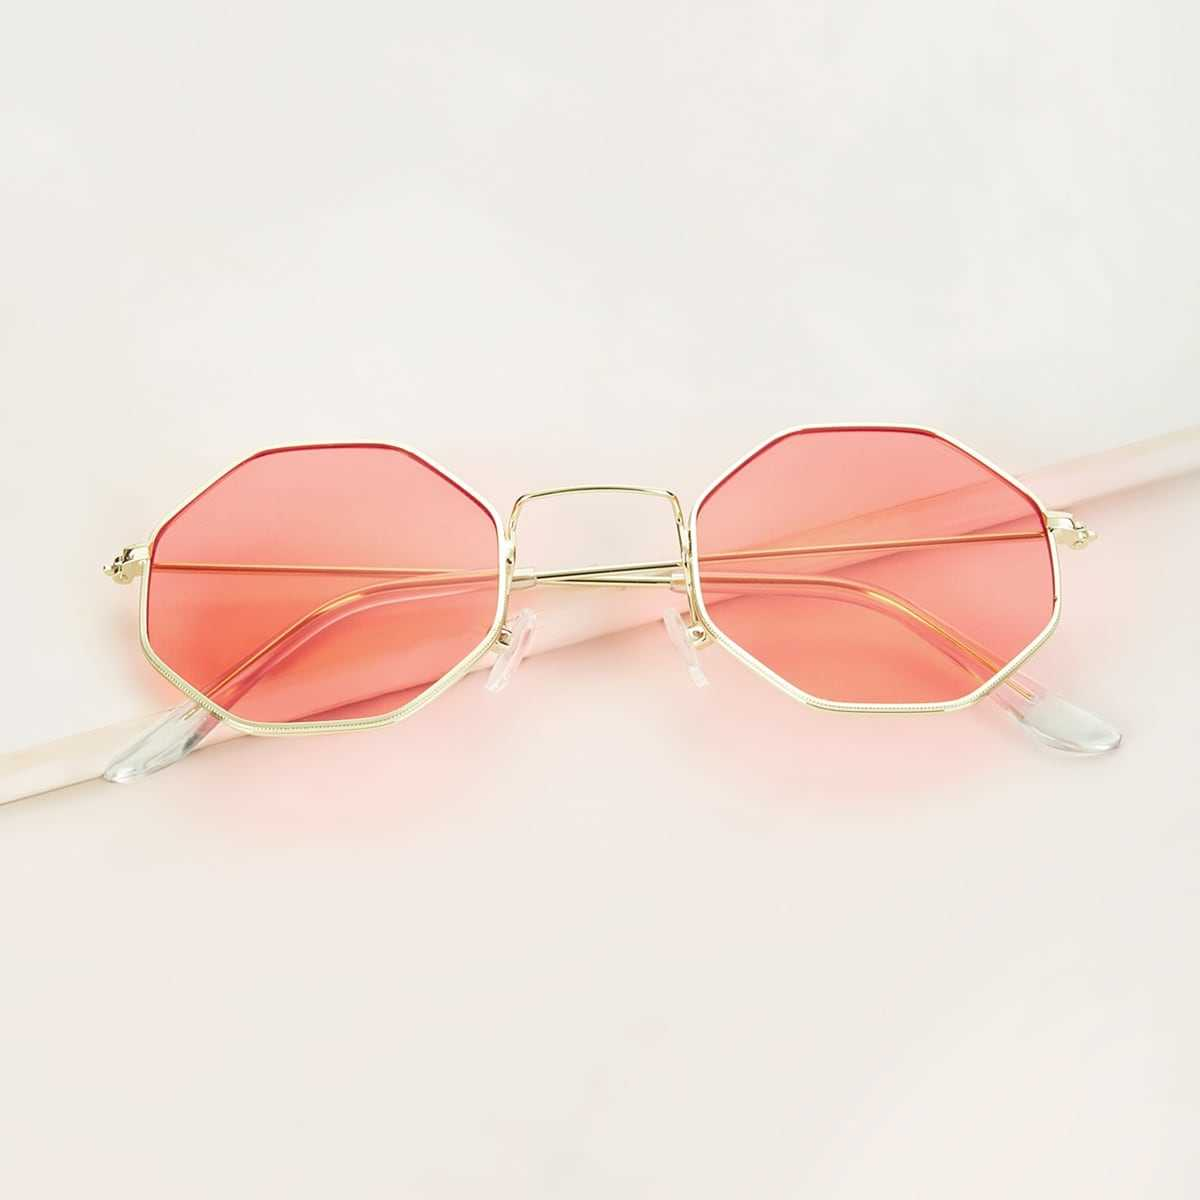 Polygon Frame Tinted Lens Sunglasses in Pink by ROMWE on GOOFASH